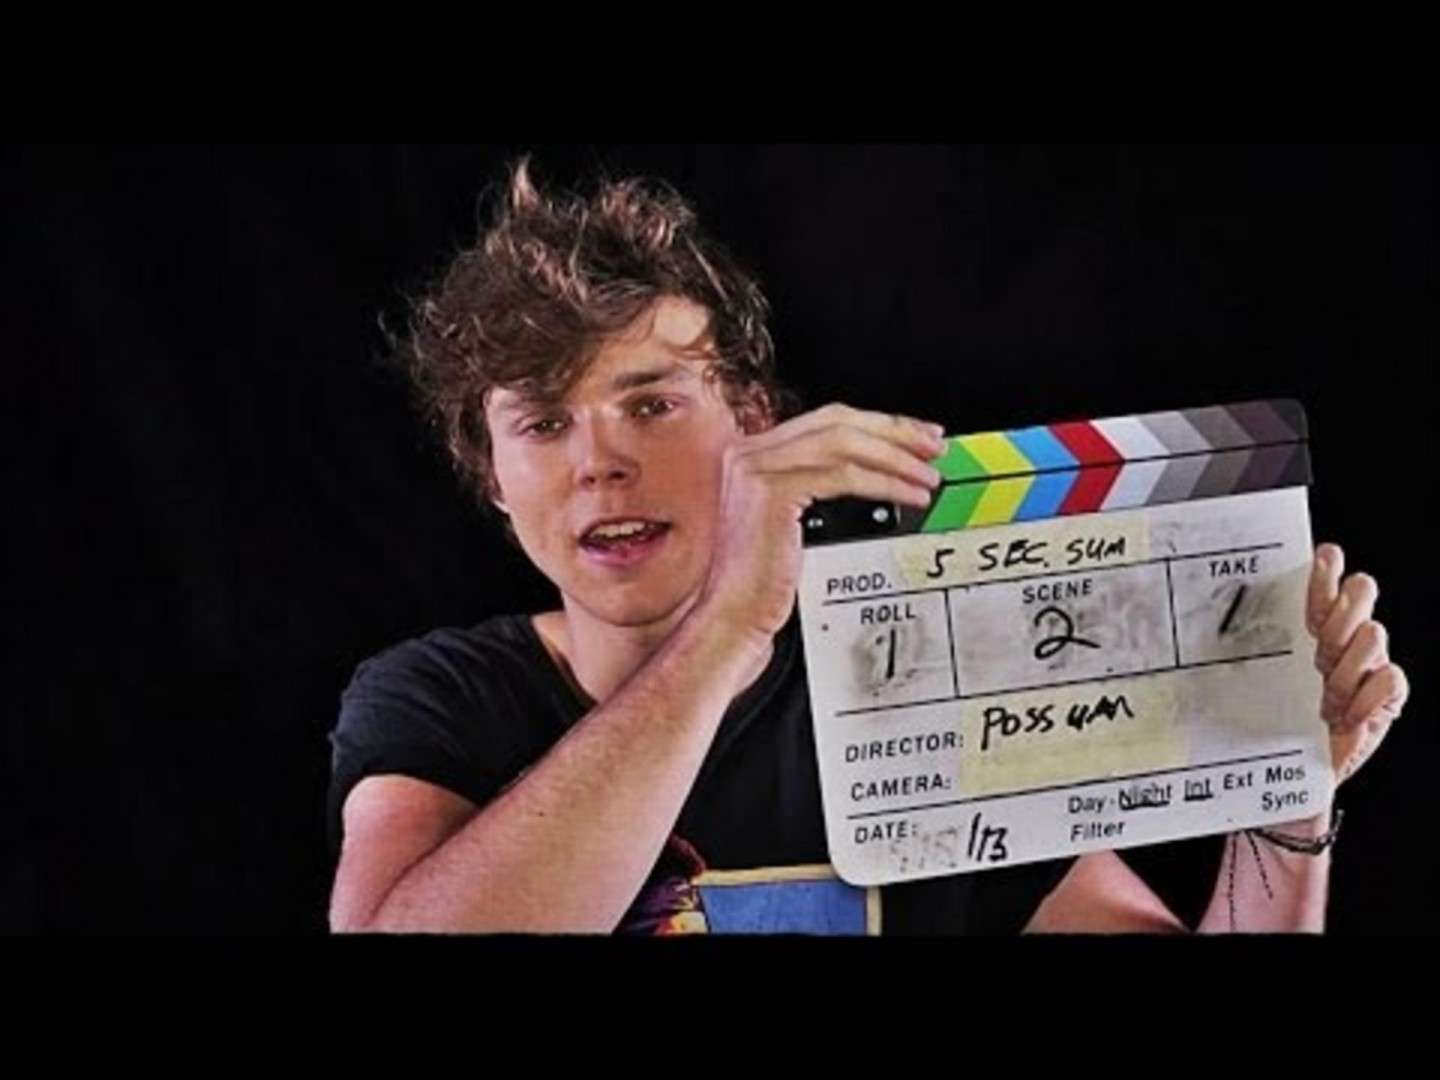 Ashton Irwin video